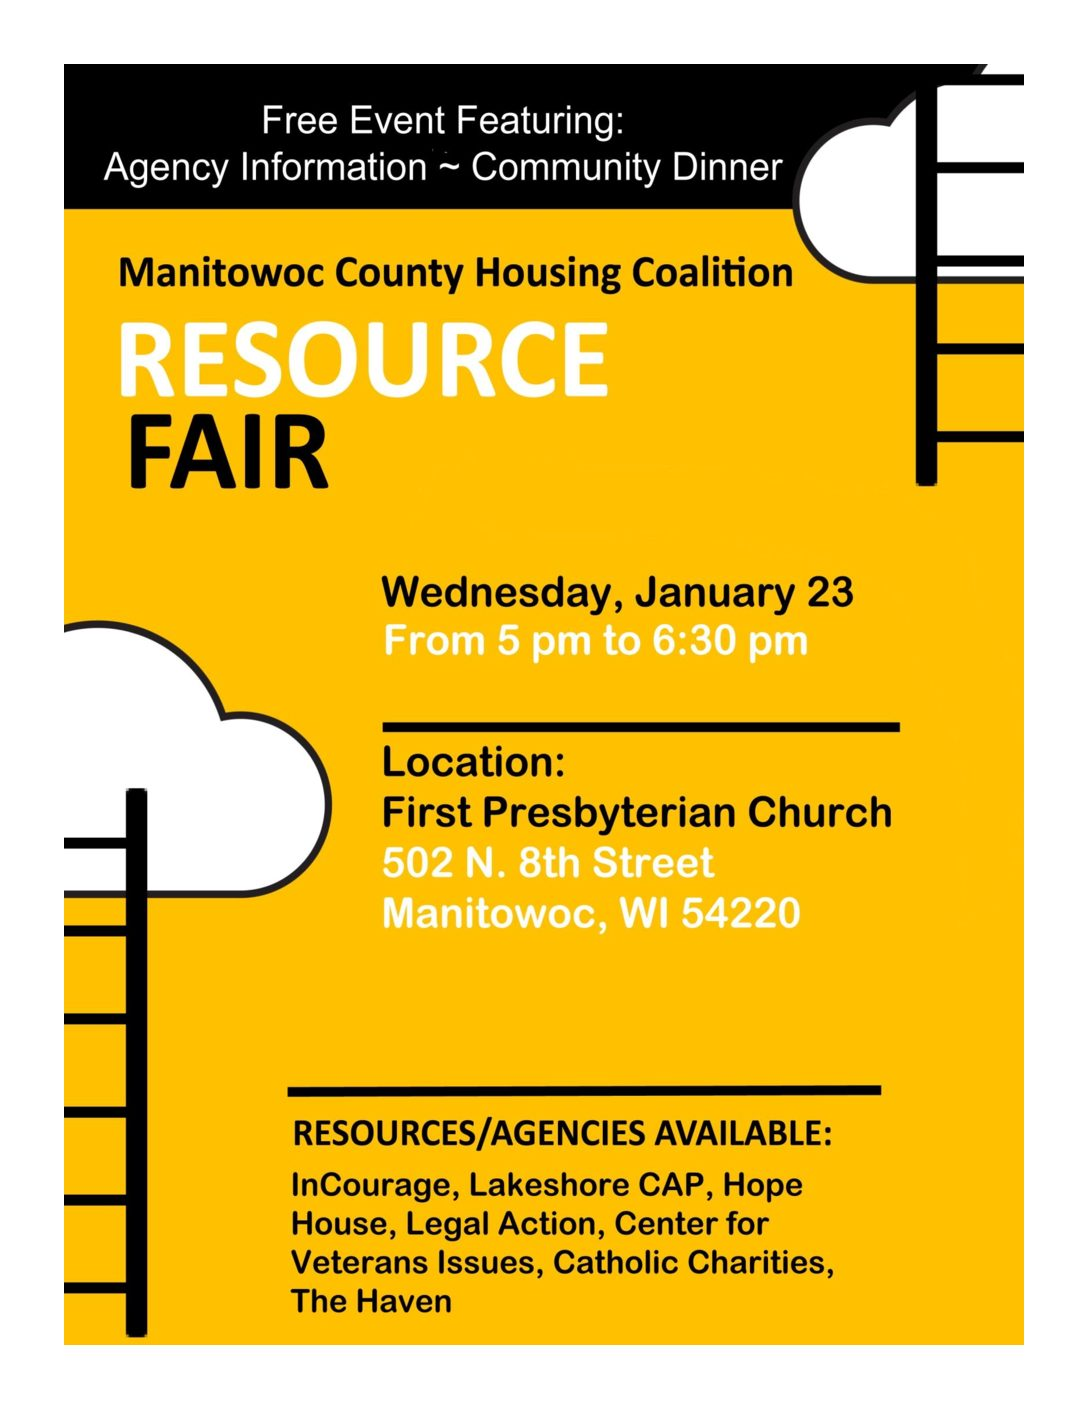 MANITOWOC CO RESOURCE FAIR